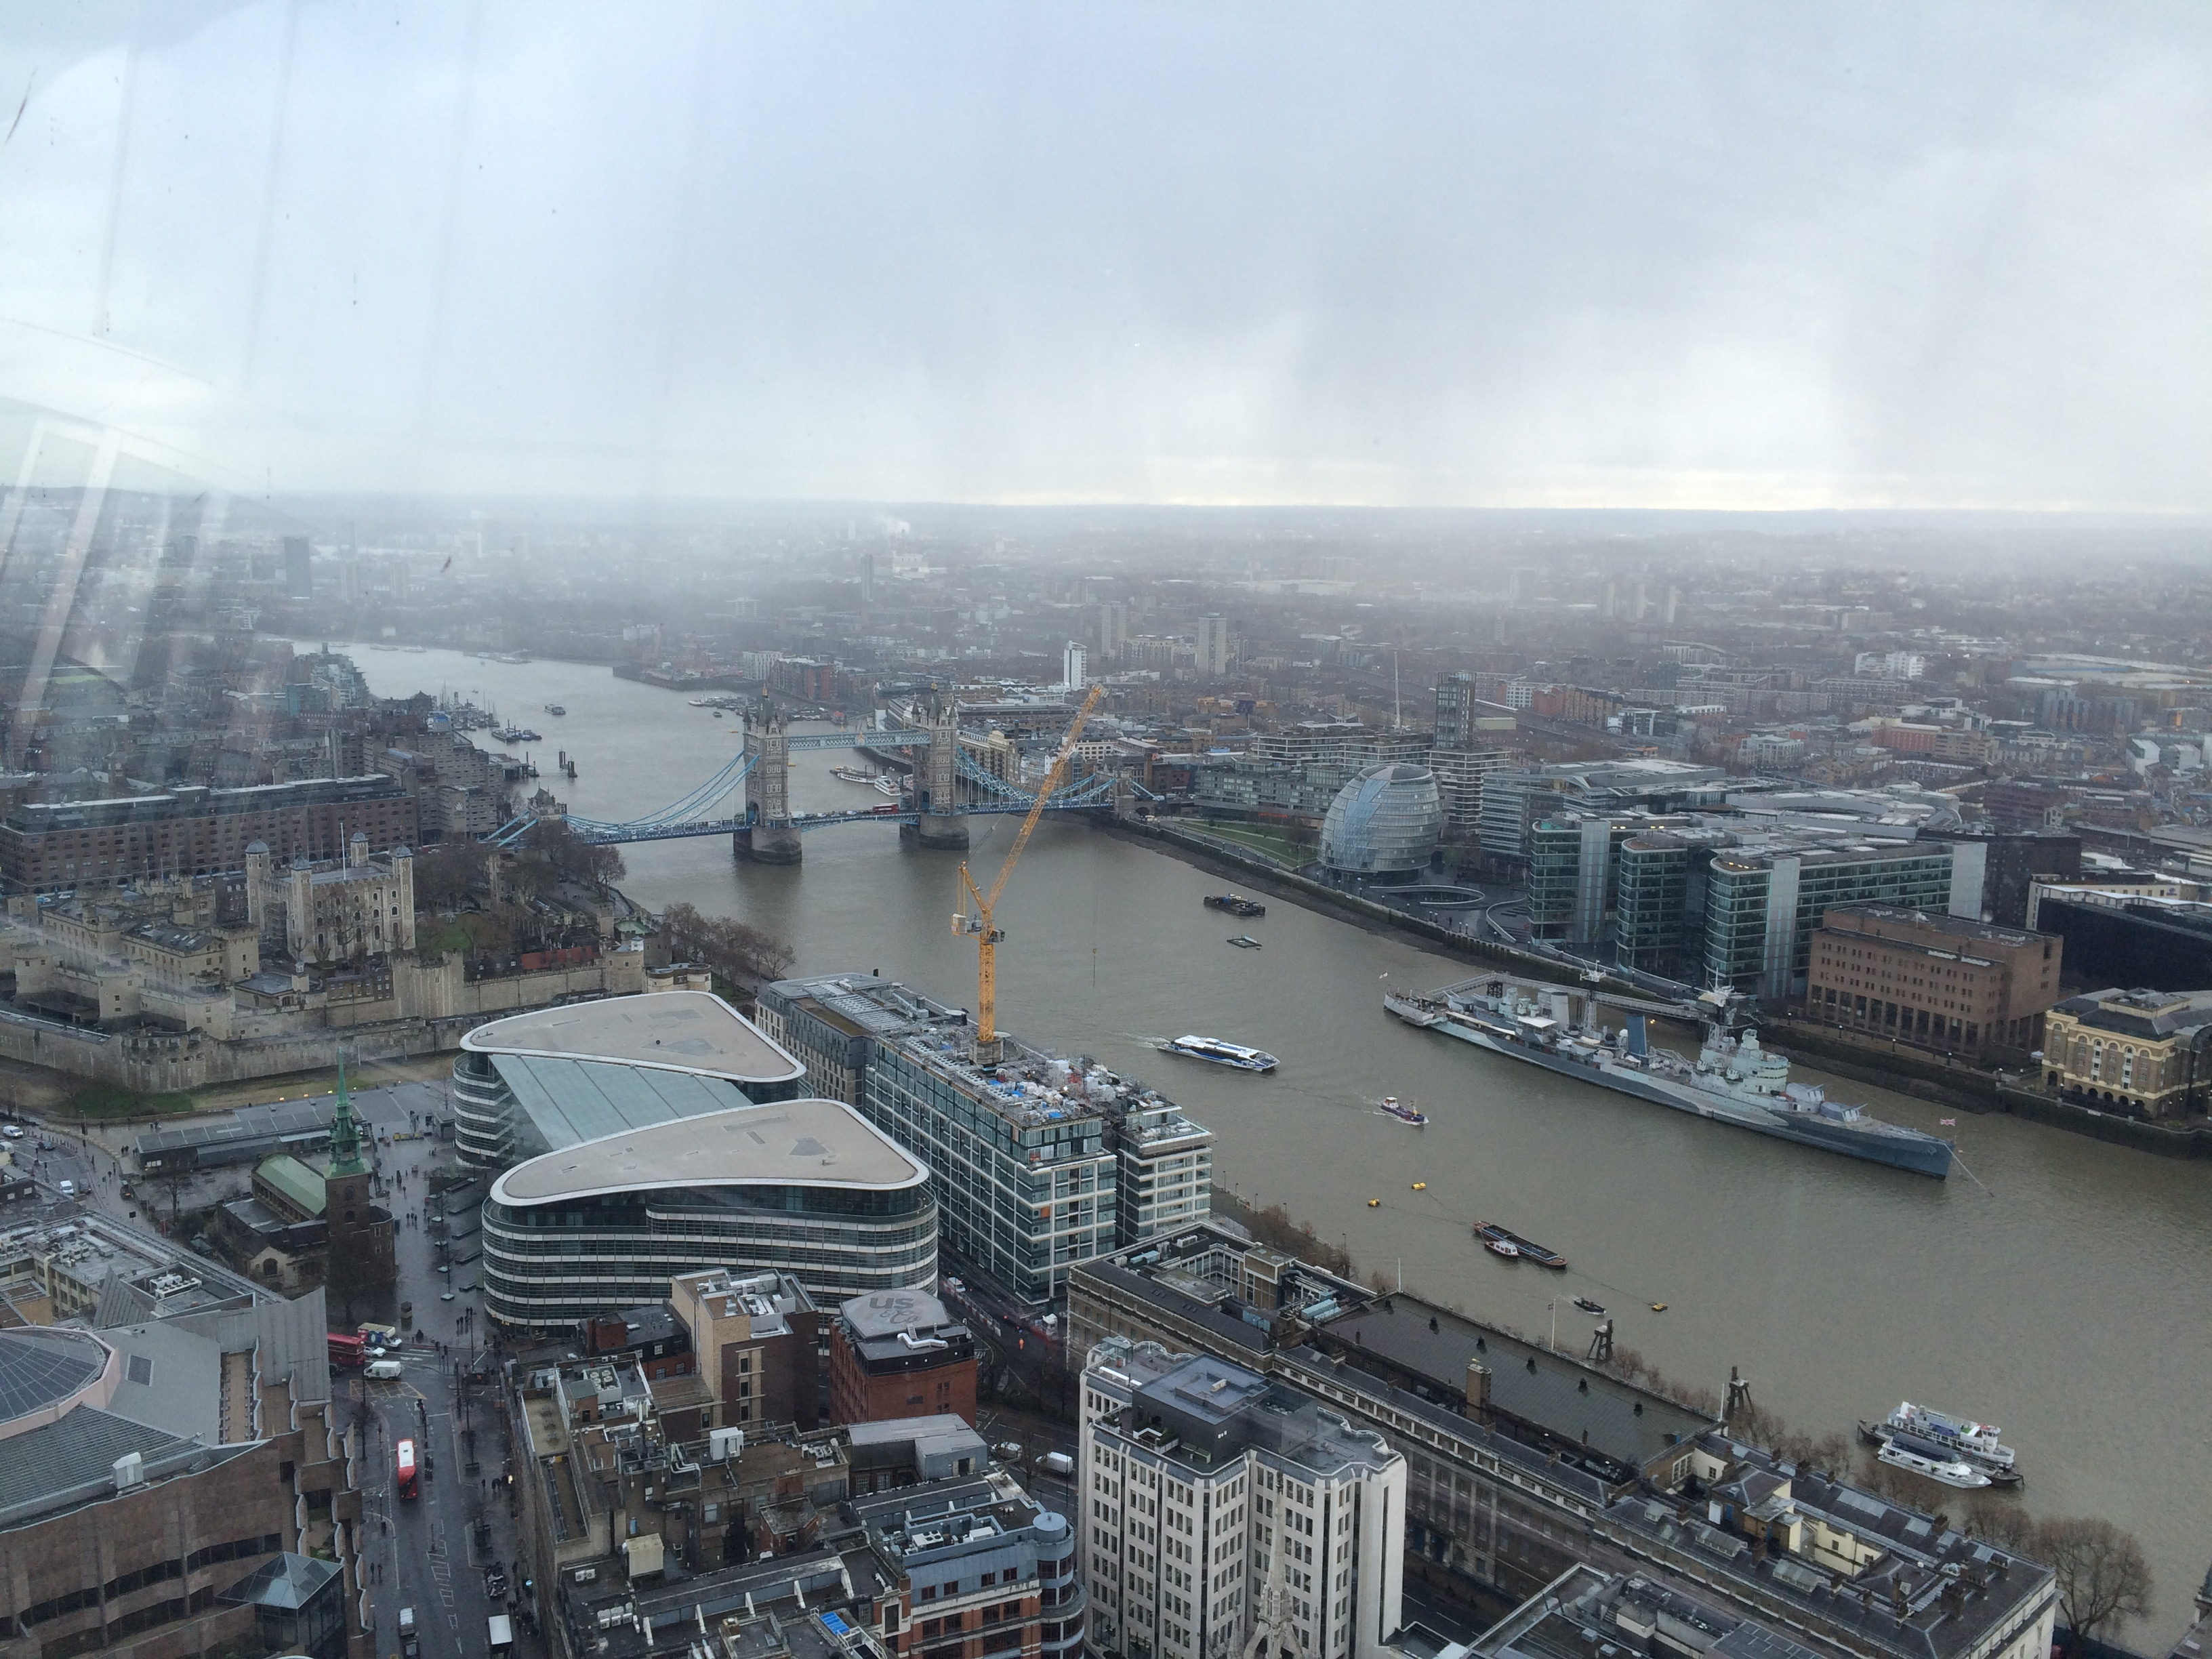 A view of cloudy London's skyline, including the river and Tower Bridge in the background.